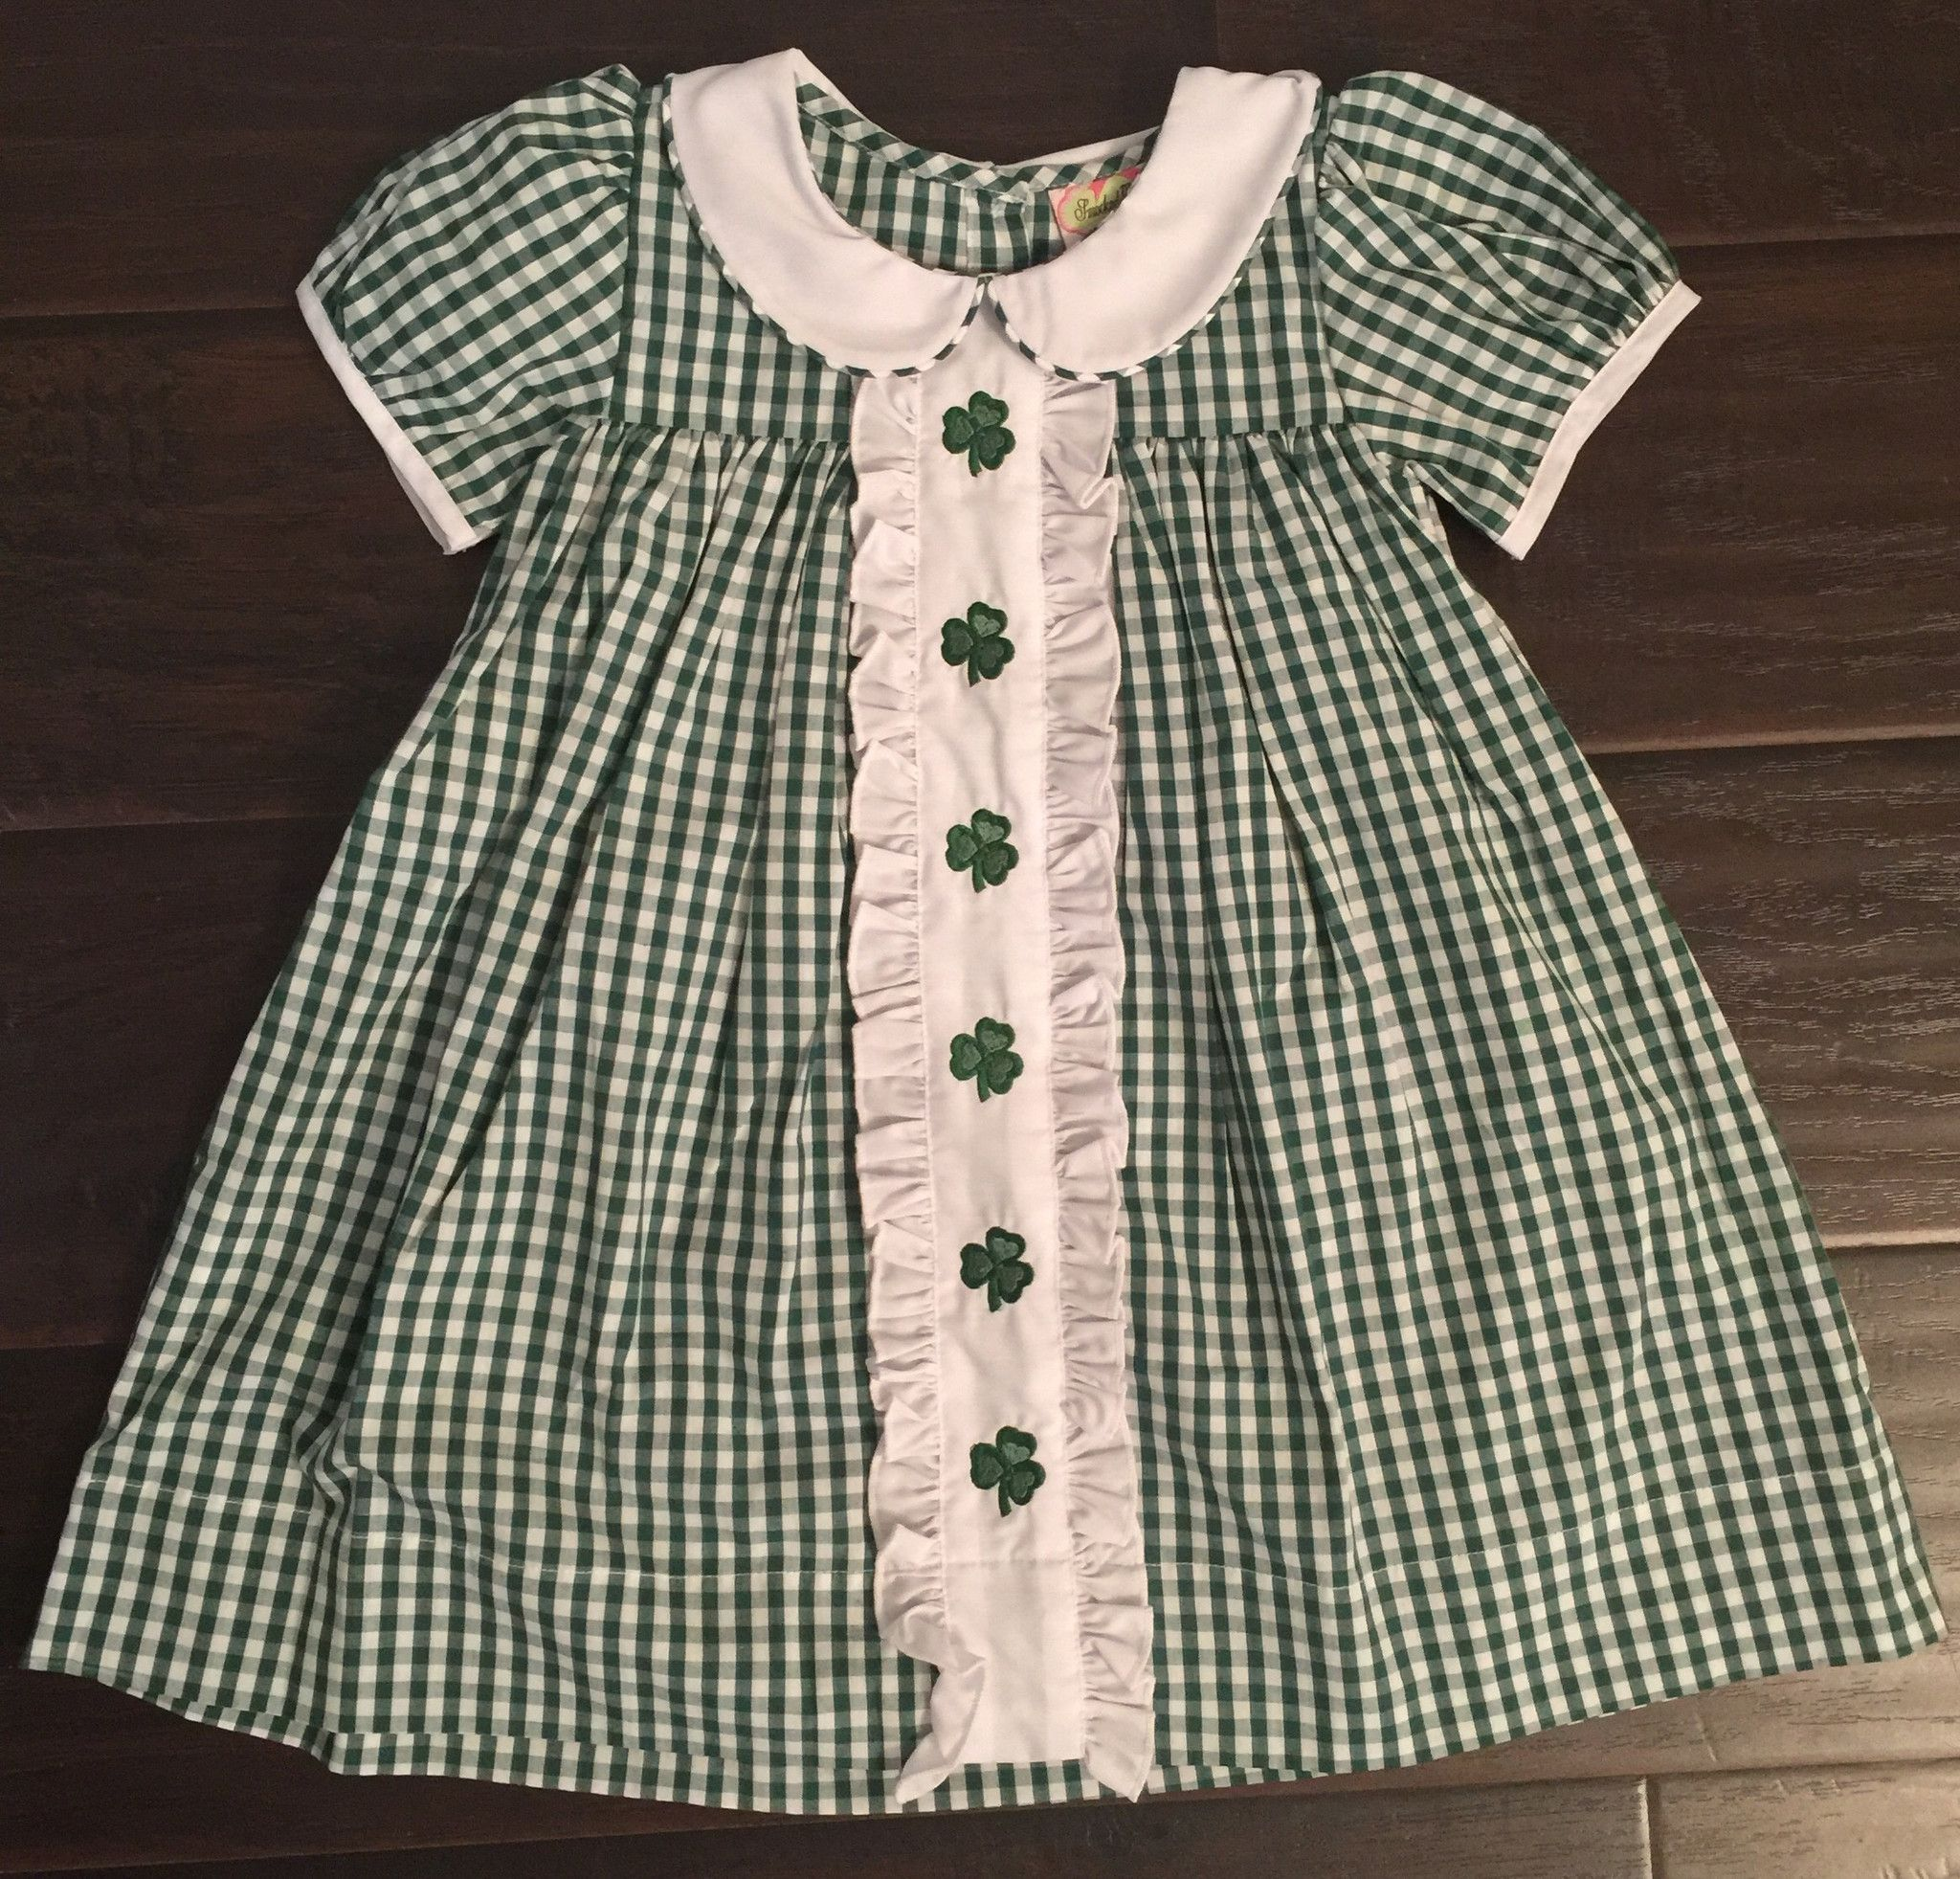 4d5dd29c0 Shamrock Green Check Embroidered Dress $25 | St. Patrick's Day ...